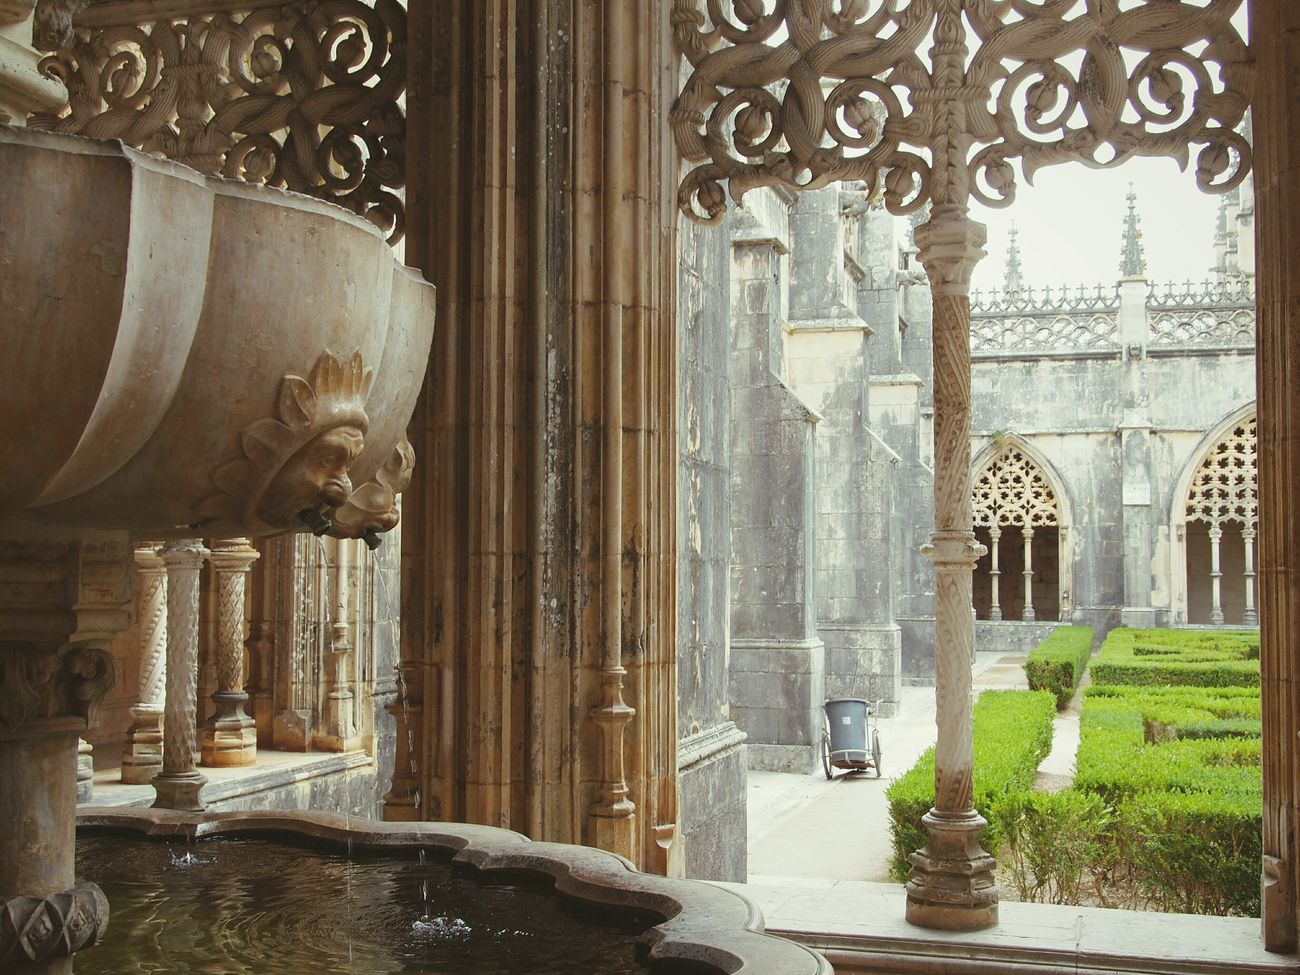 Cloister Built Structure Tranquil Scene No People Day History Travel Destinations Monastery Batalha Portugal Gothic Peace Fountain Water Reflection Spirituality Christianity Monks Stones Stones & Water Art Eyeemphotography Eye4photography  EyeEm Gallery Olympus Cloister